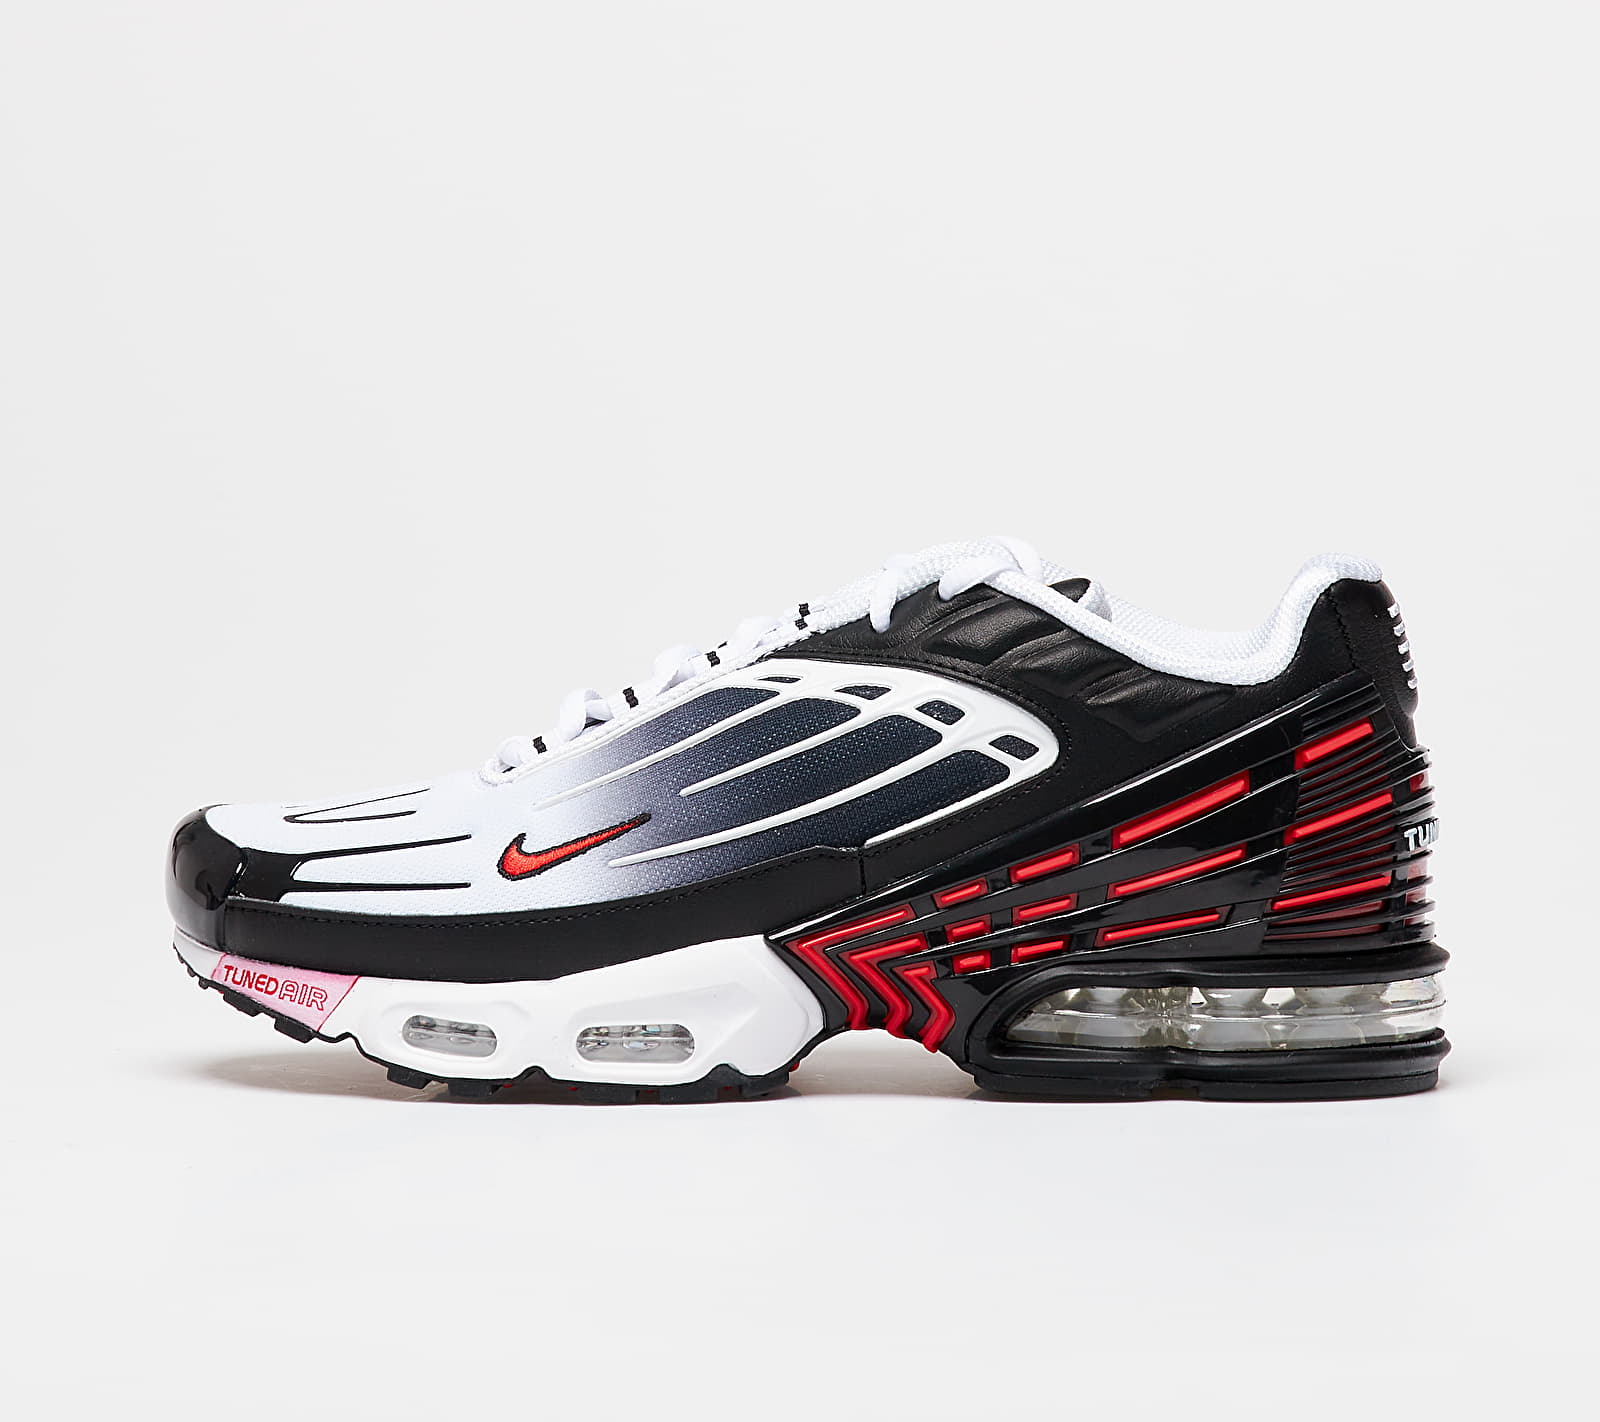 Nike Air Max Plus III Black/ University Red-White-Black CD7005-004